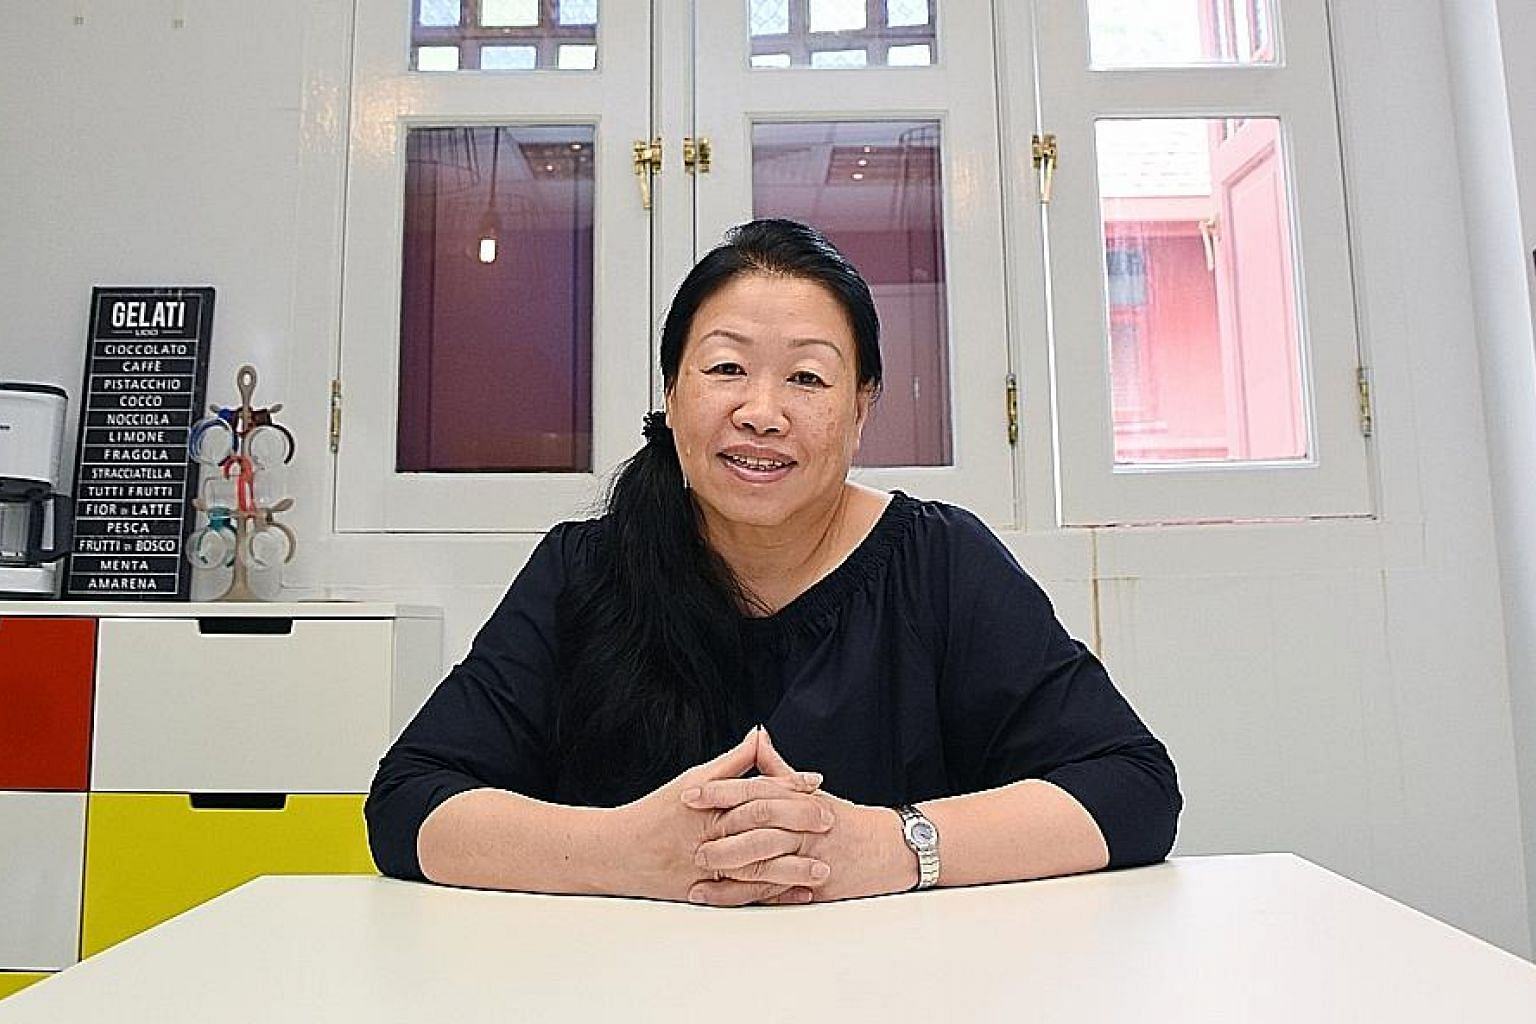 Madam Ivy Lim, who landed her new job in March, has lost no time in becoming software firm LogRhythm's best-performing telesales employee in the region. Her tenacity and grasp of languages - she speaks English, Mandarin, Cantonese and Malay - has ena